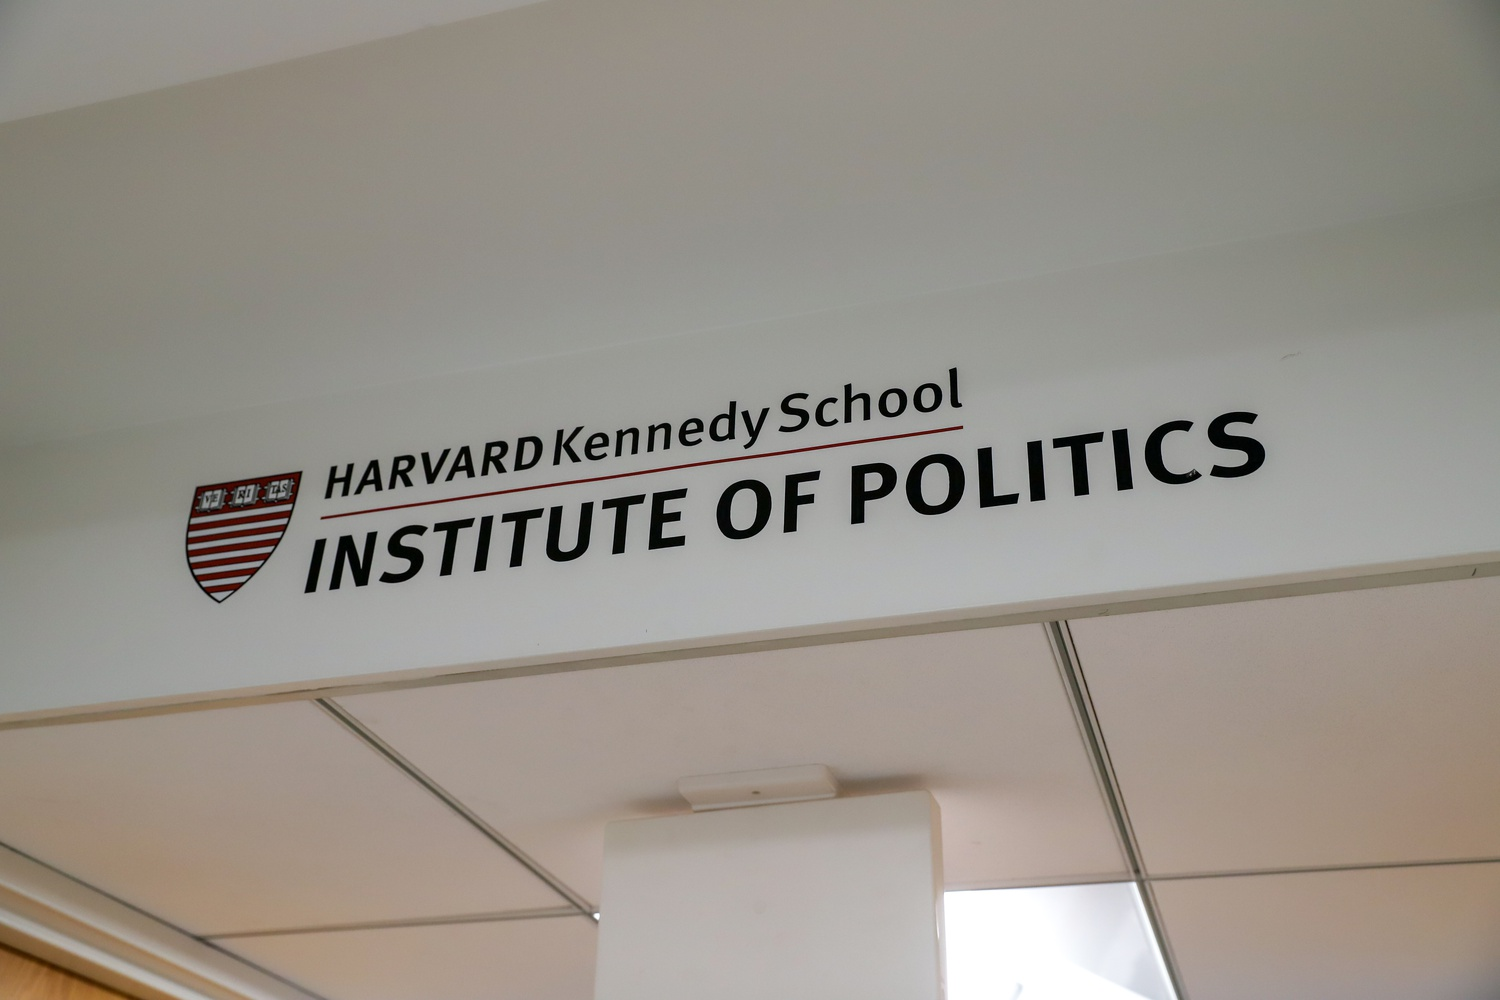 The Institute of Politics and Shorenstein Center at Harvard Kennedy School co-hosted an event on media coverage of the 2020 election.